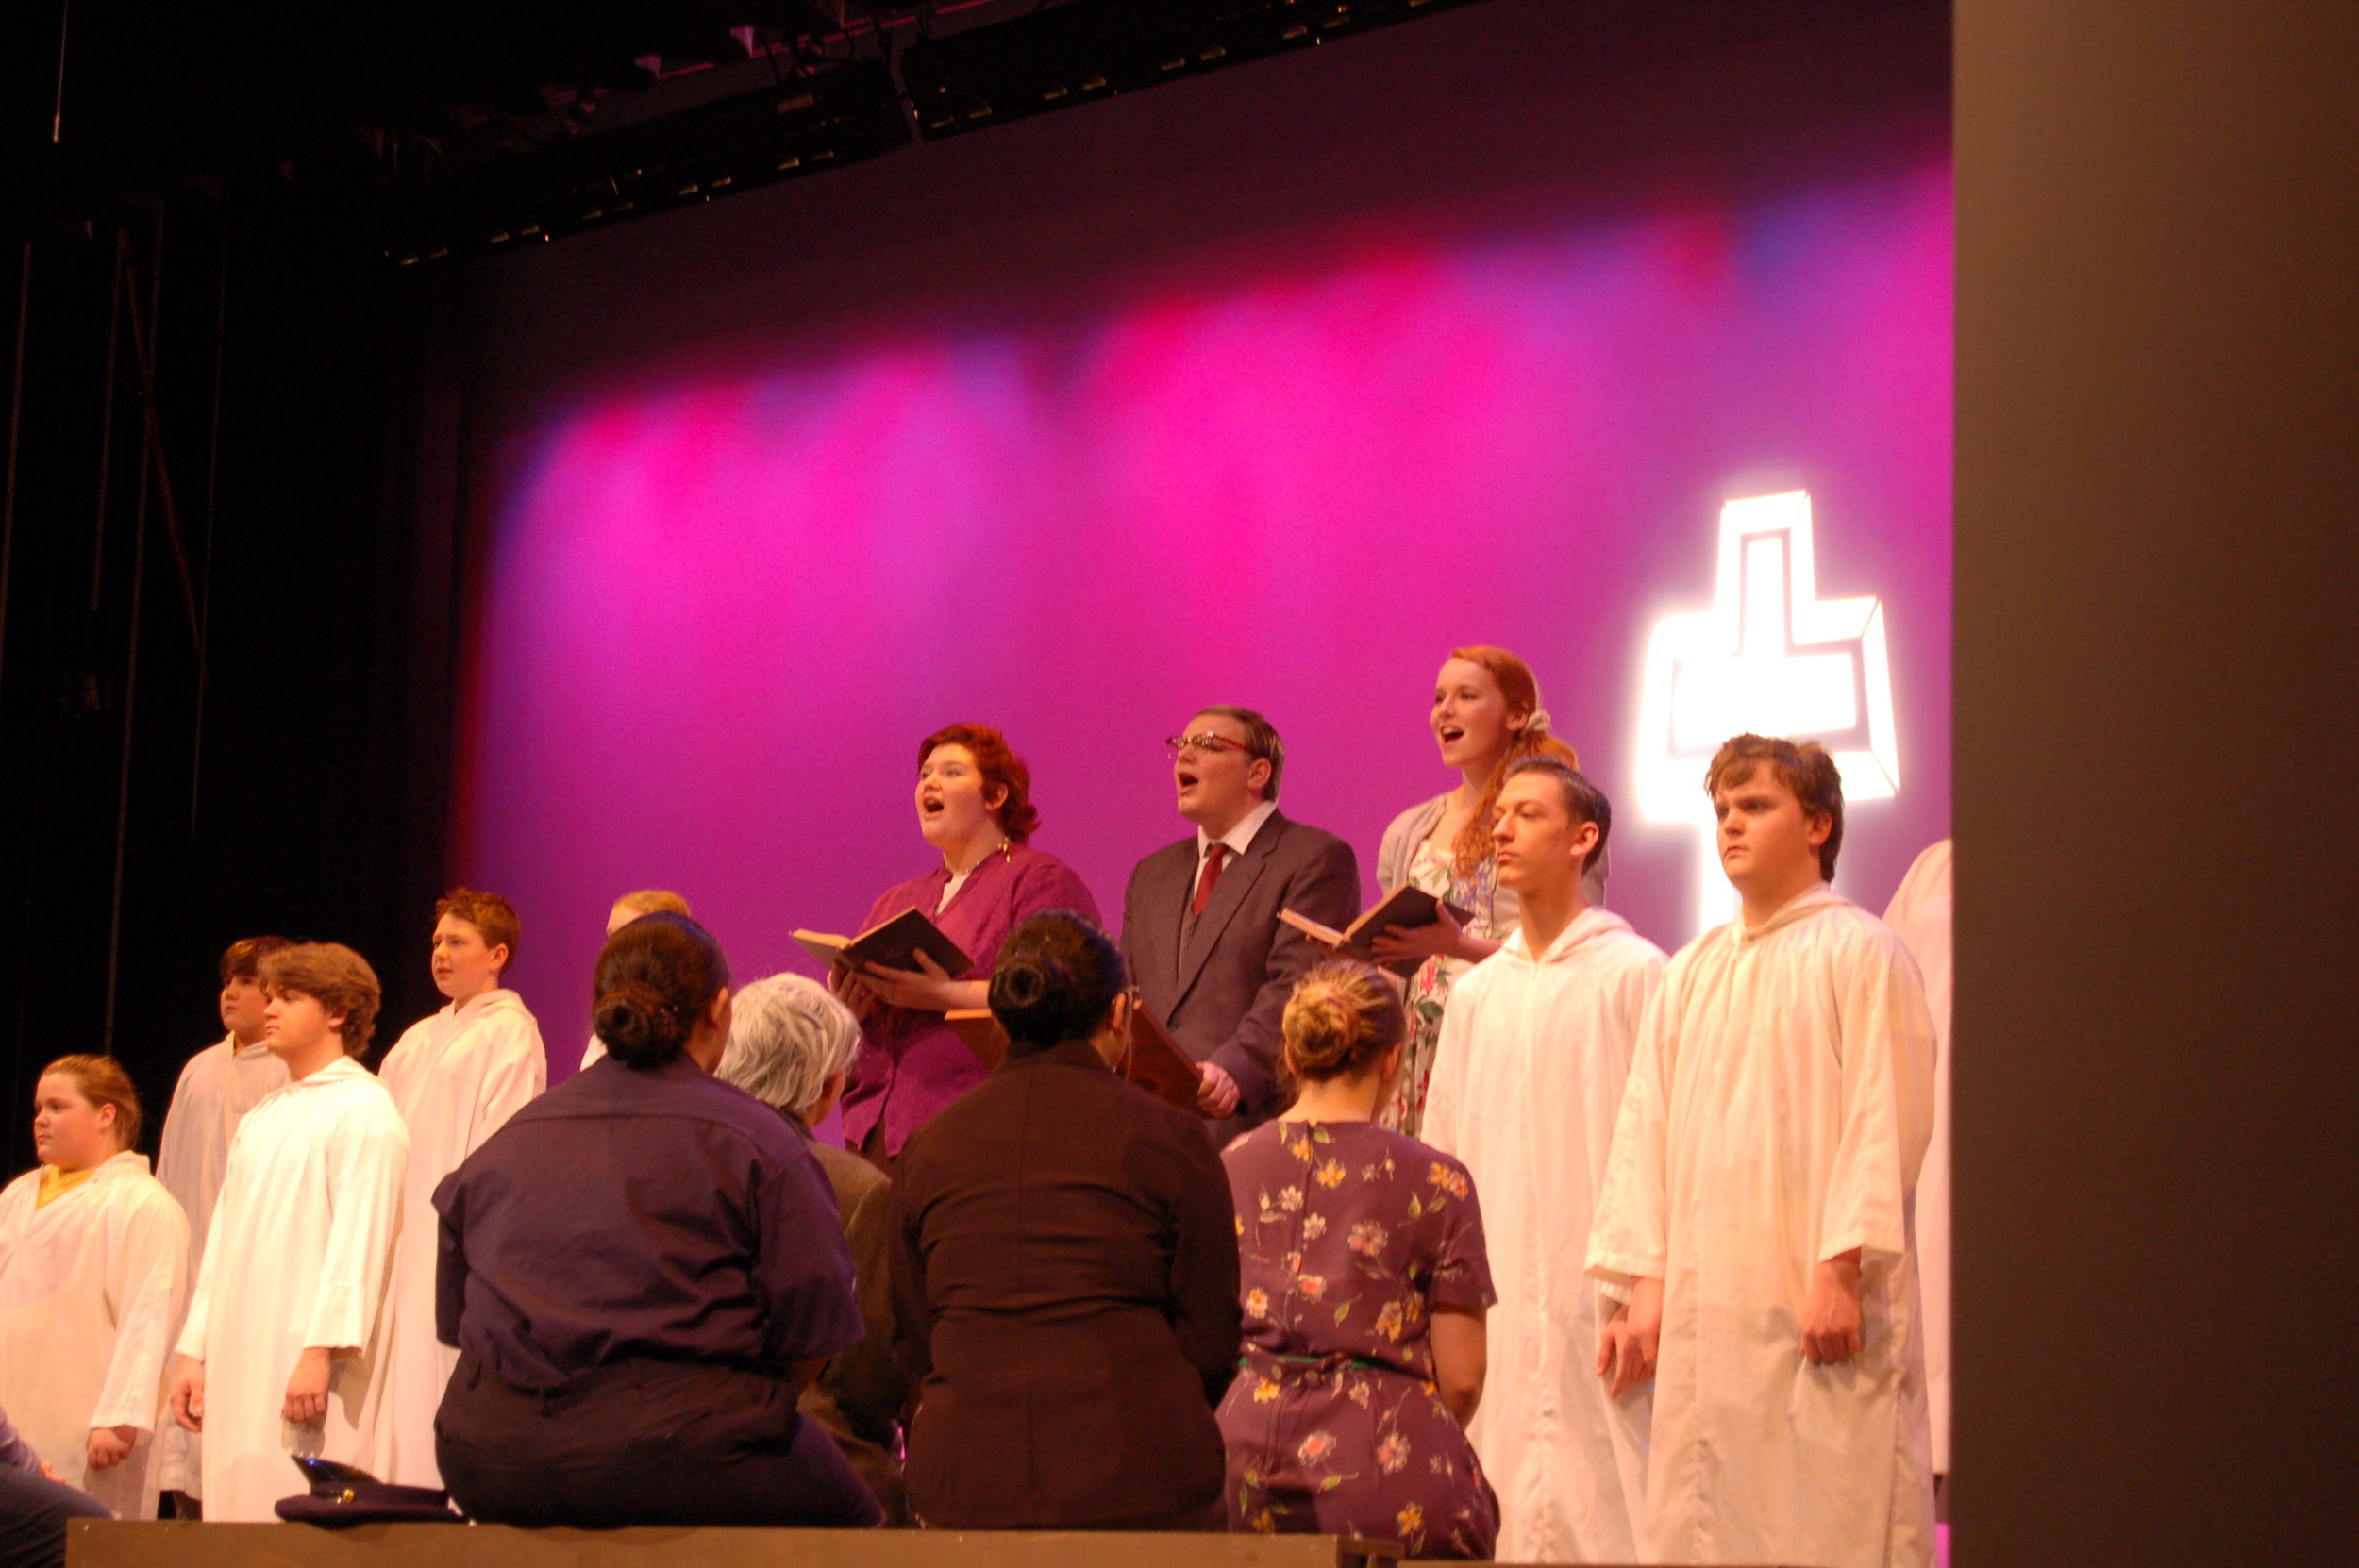 """The alter """"boys"""" from left, Shae Arsenault, Garrett Dewyea, Bryce Davison, Cody Auclair, Jayce Clement and Lowden Pratt.    Faced away, from left, Emily Roberts, Olivia Ellis, Karen Bujold and Caitlynn Flemming. And in mid-song from left, Sadie Johnson, Jonathan McCullouch and Sophia Martin."""